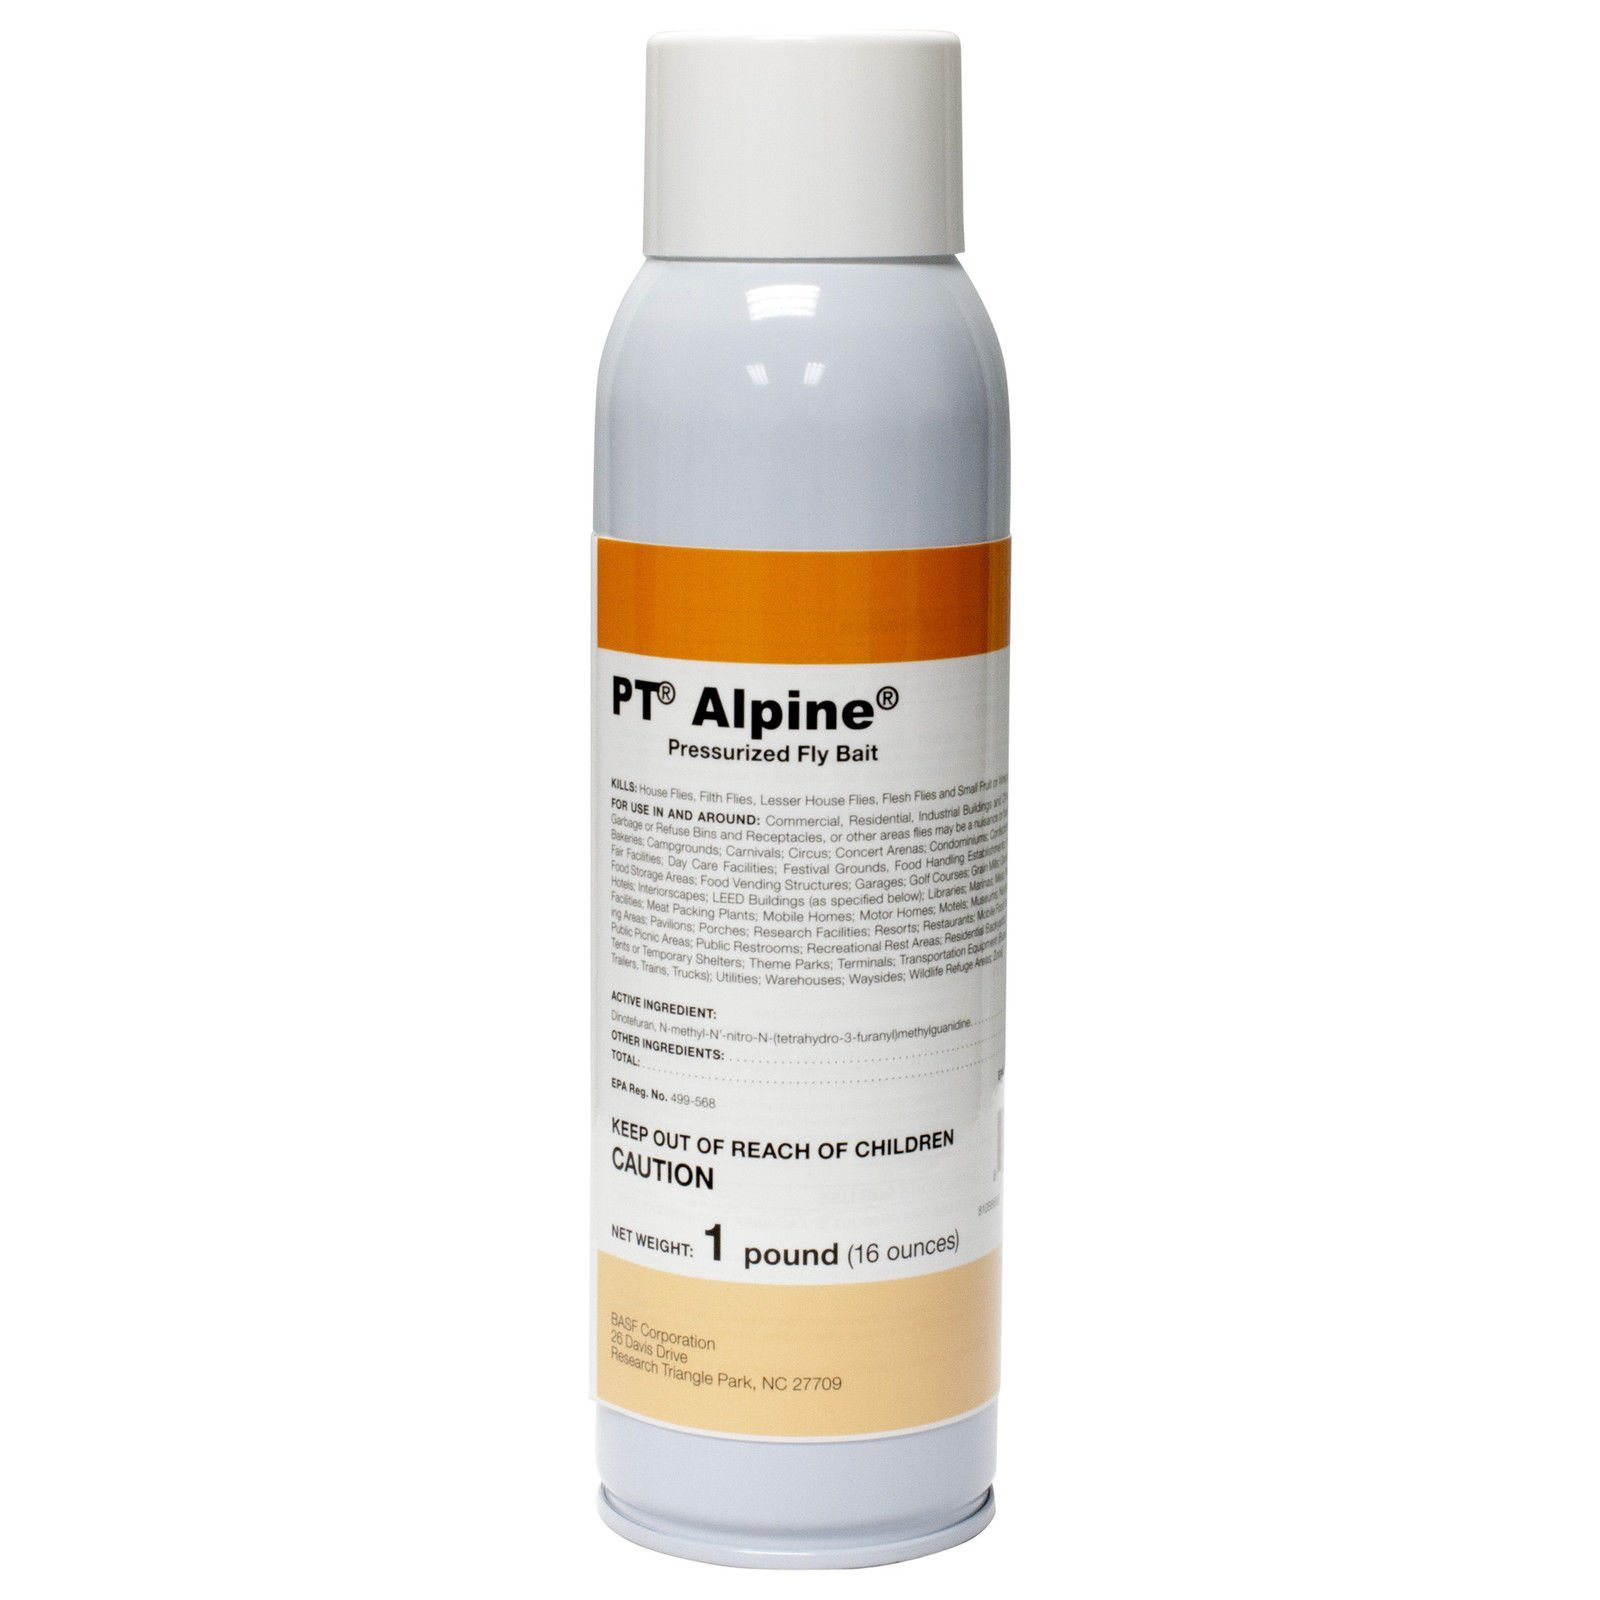 Alpine PT Pressurized Fly Bait - 16 oz can - by BASF